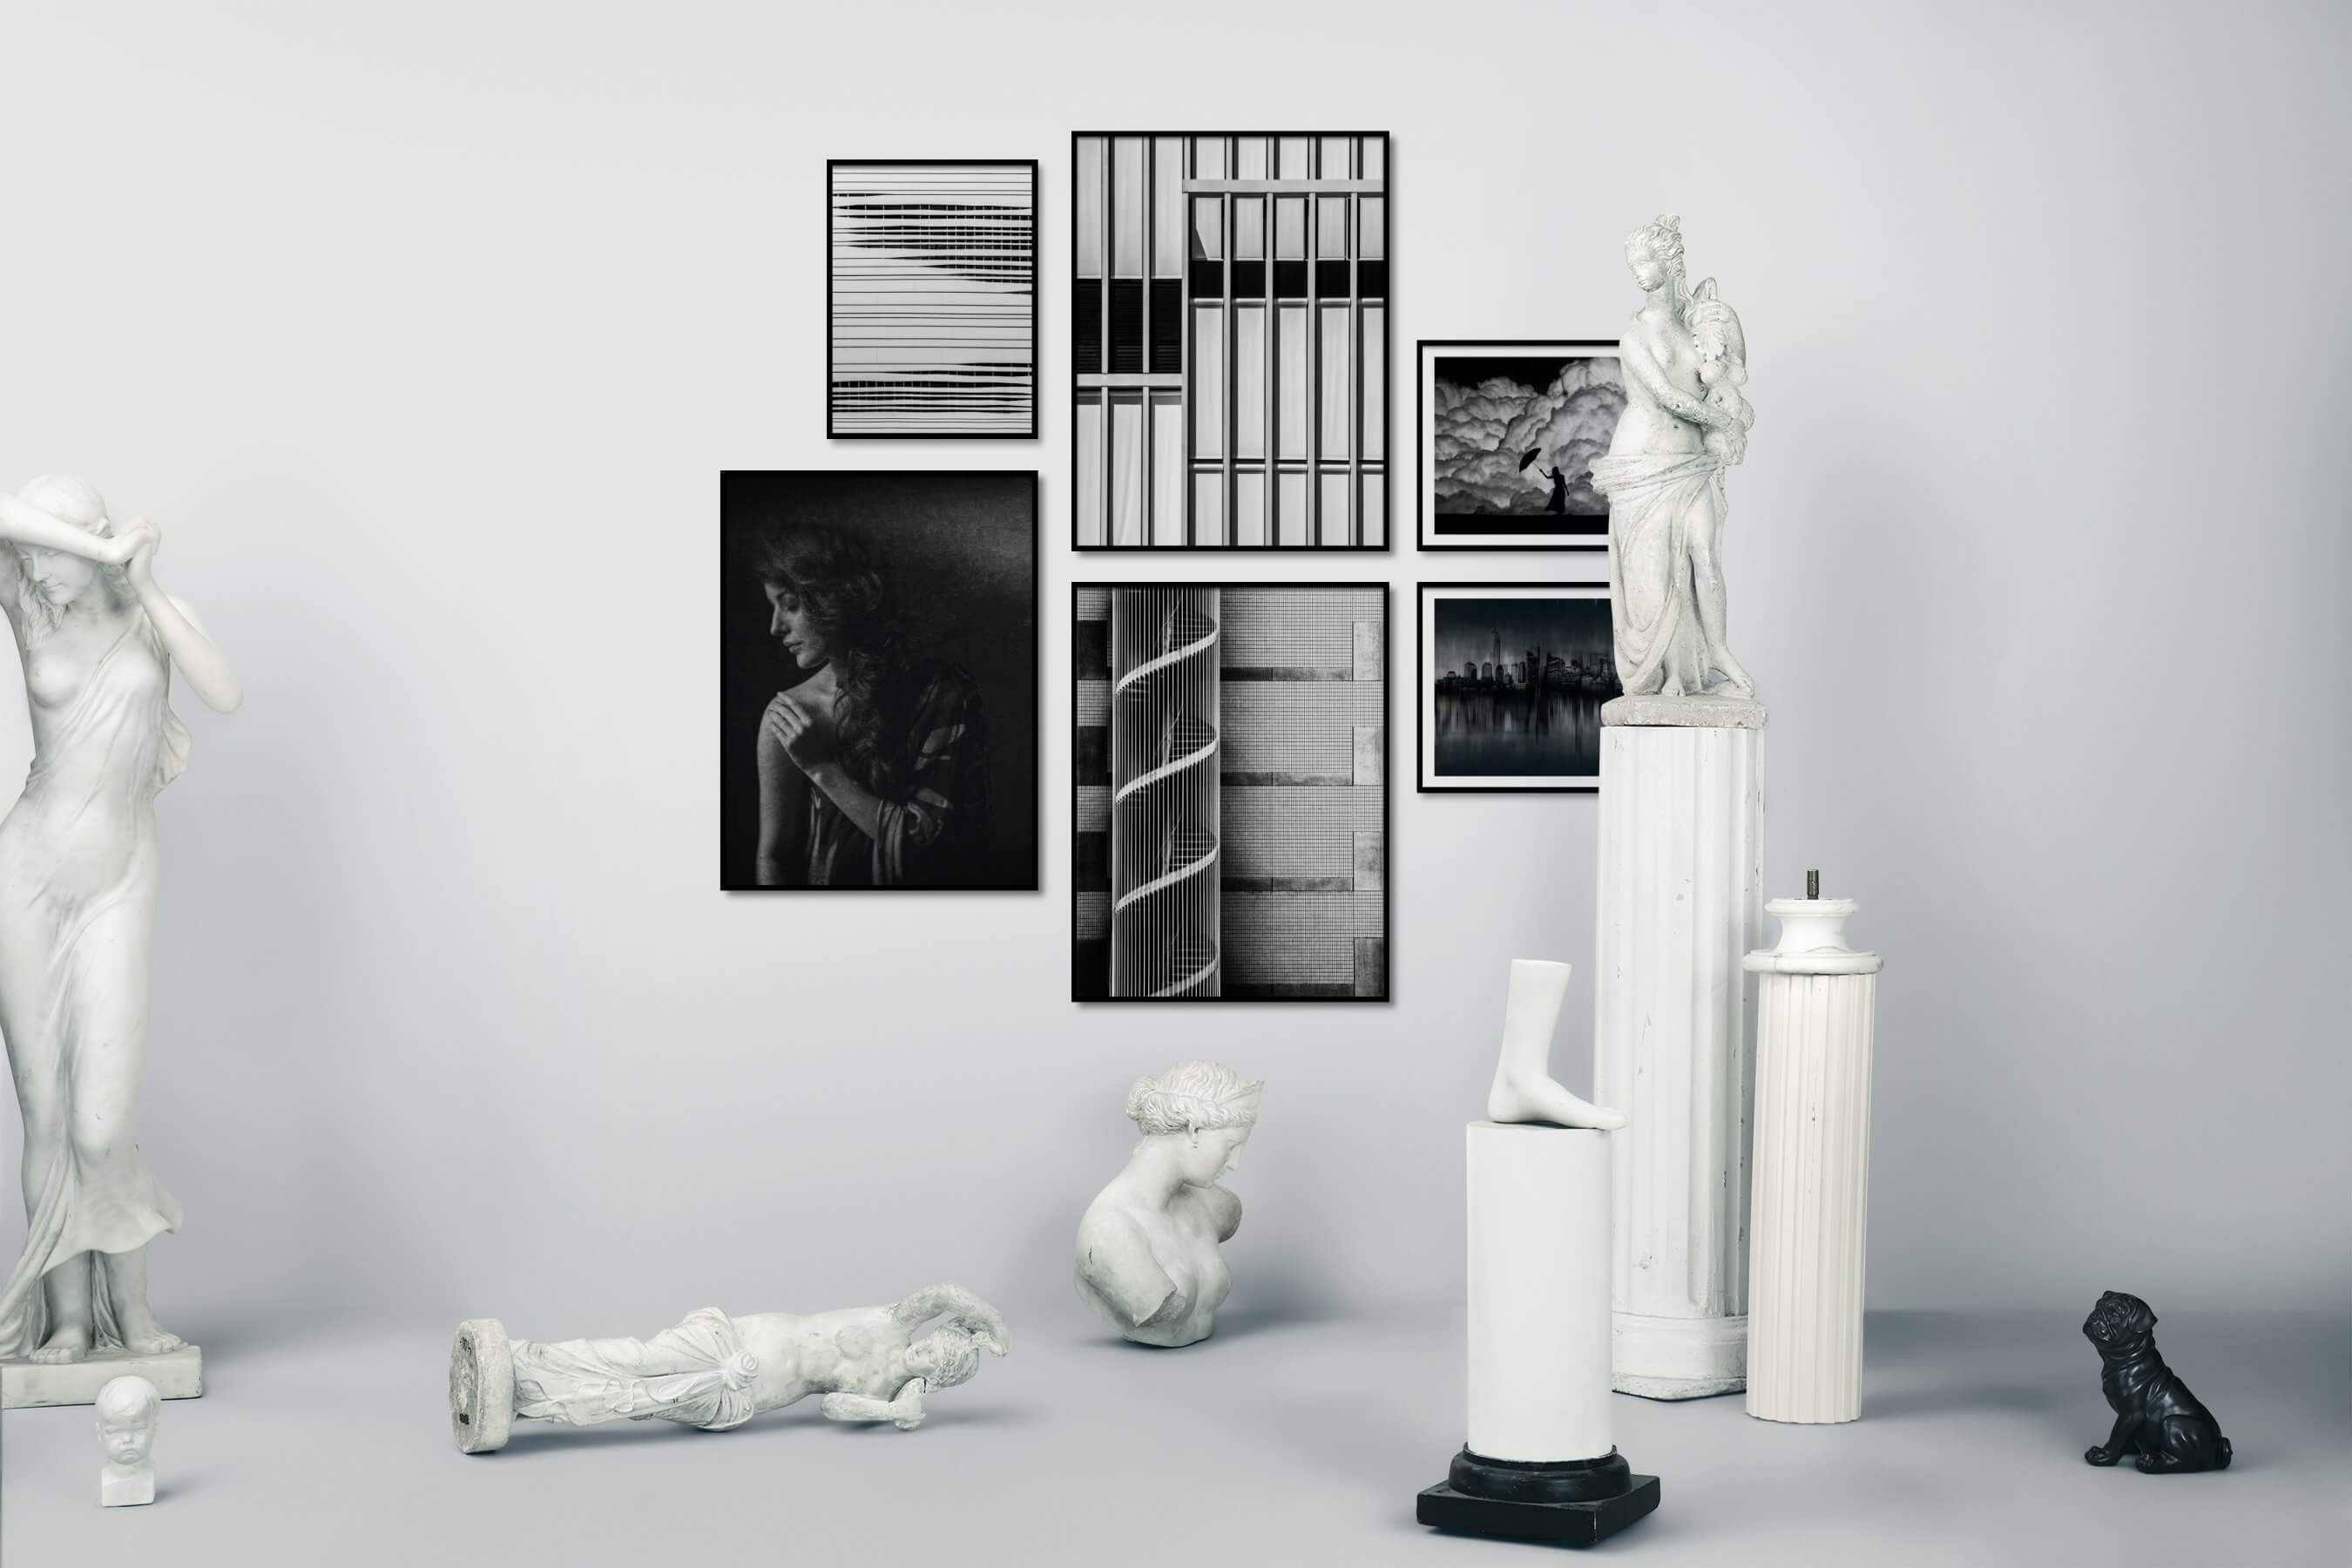 Gallery wall idea with six framed pictures arranged on a wall depicting Black & White, For the Moderate, Fashion & Beauty, Artsy, City Life, and Americana